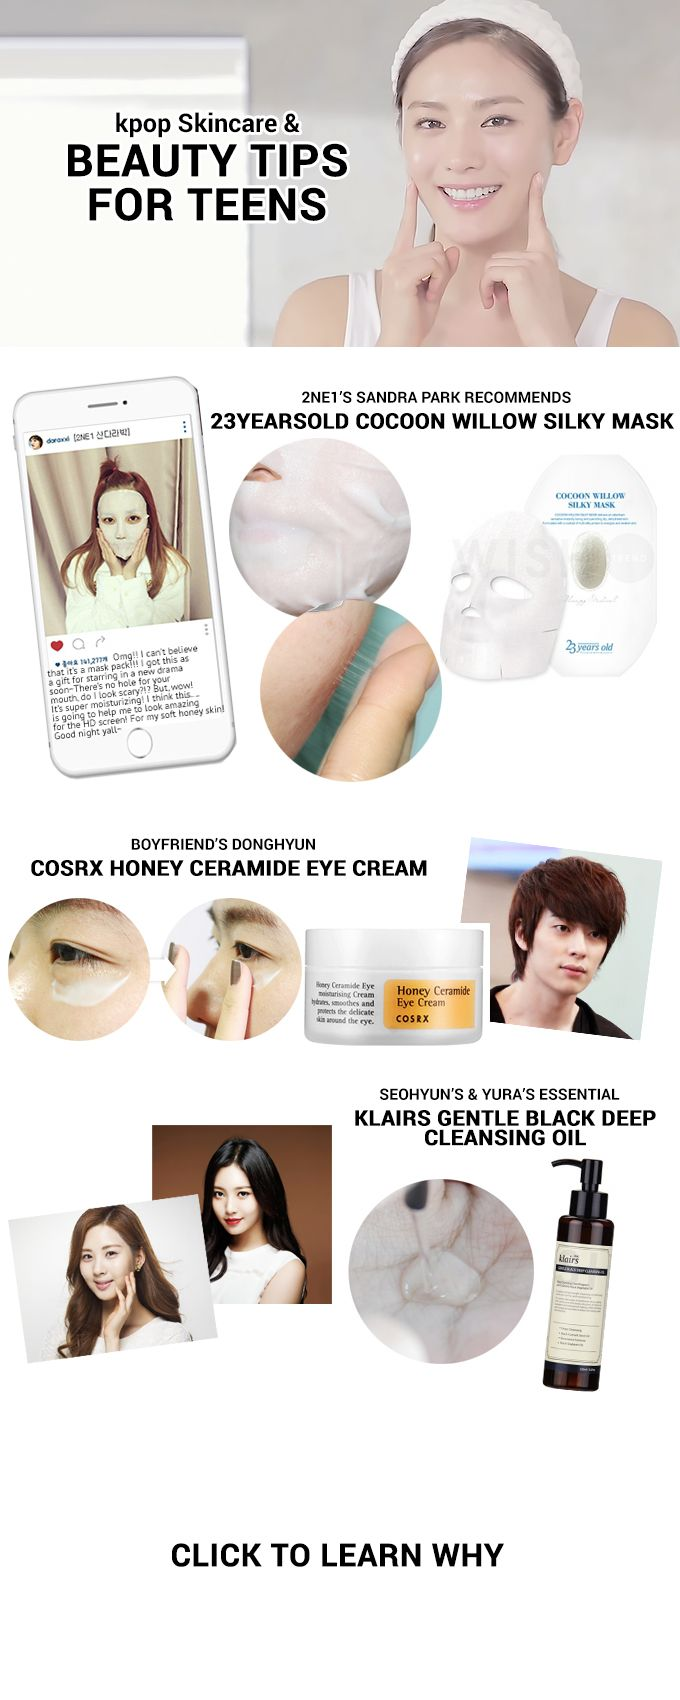 Kpop Skincare Beauty Tips For Teens Wishtrend Glam Beauty Tips For Teens Skin Care Skin Care Essentials